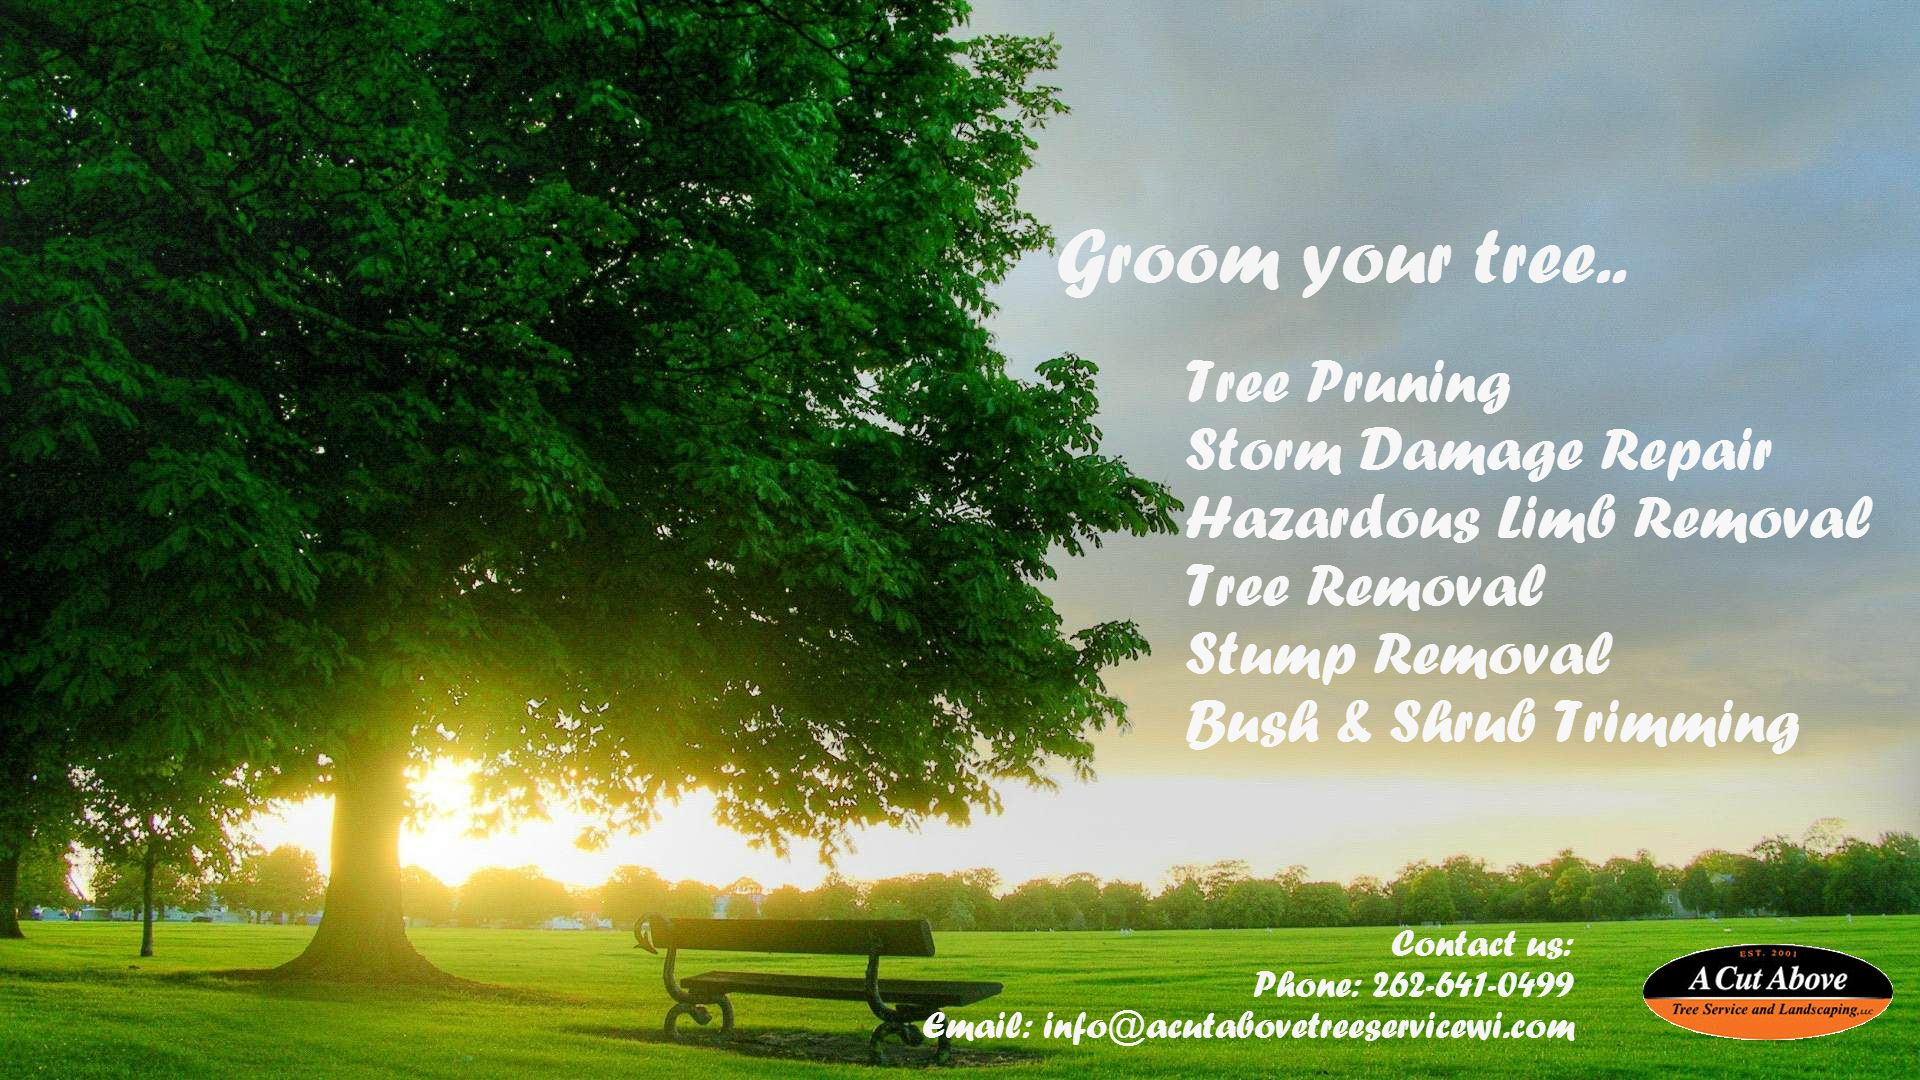 The professional tree removal services are necessary to